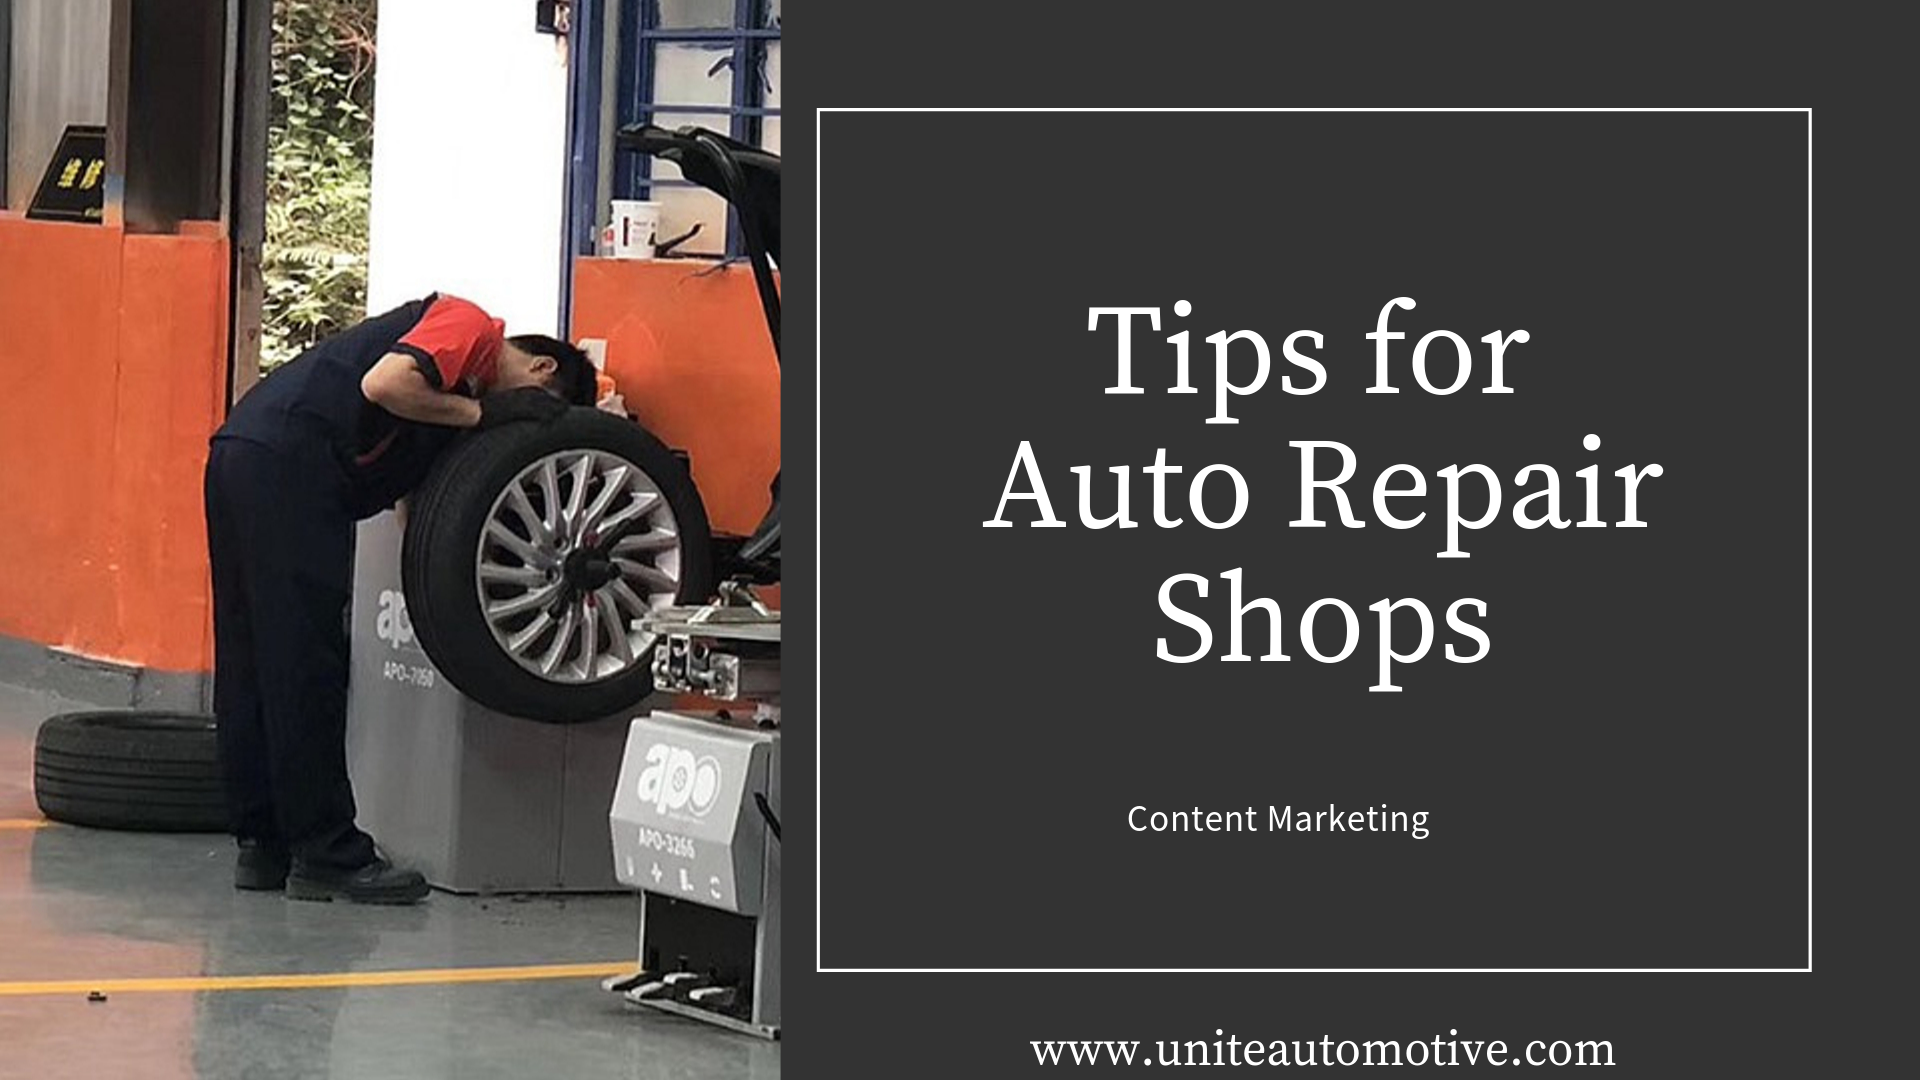 Getting Started With Content Marketing: 5 Tips for Auto Repair Shops